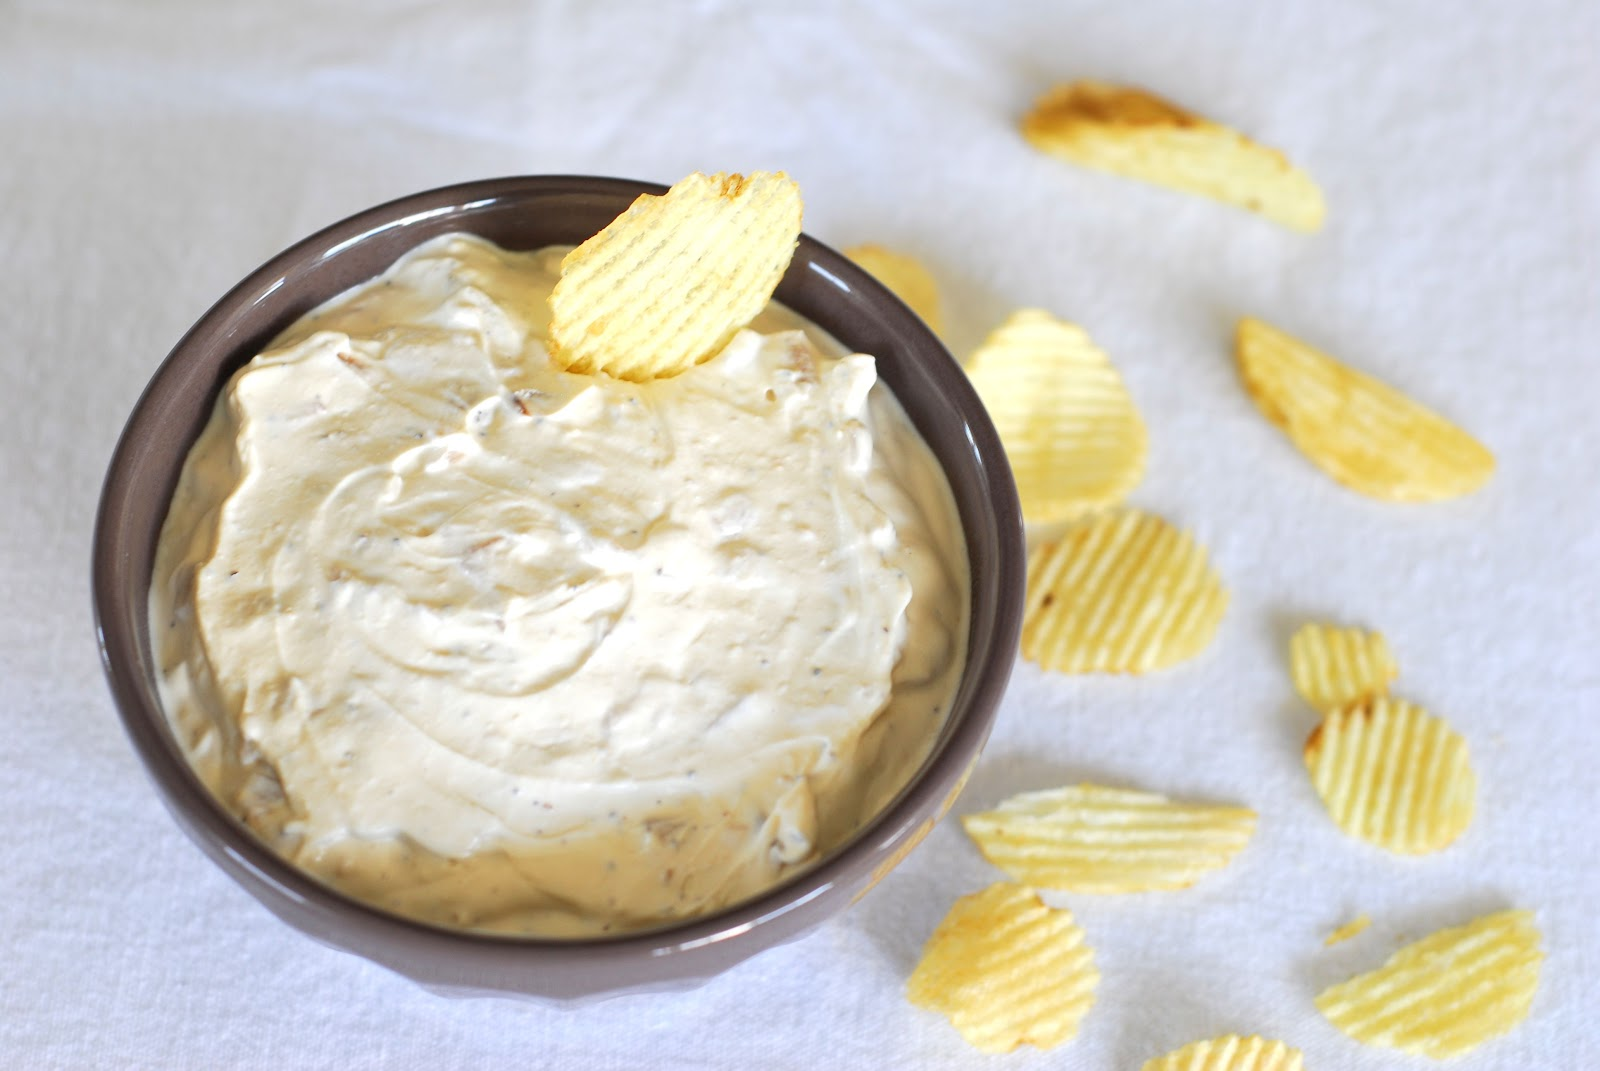 Lays Potato Chips or Ruffles and Dean's French Onion Dip go well with ...